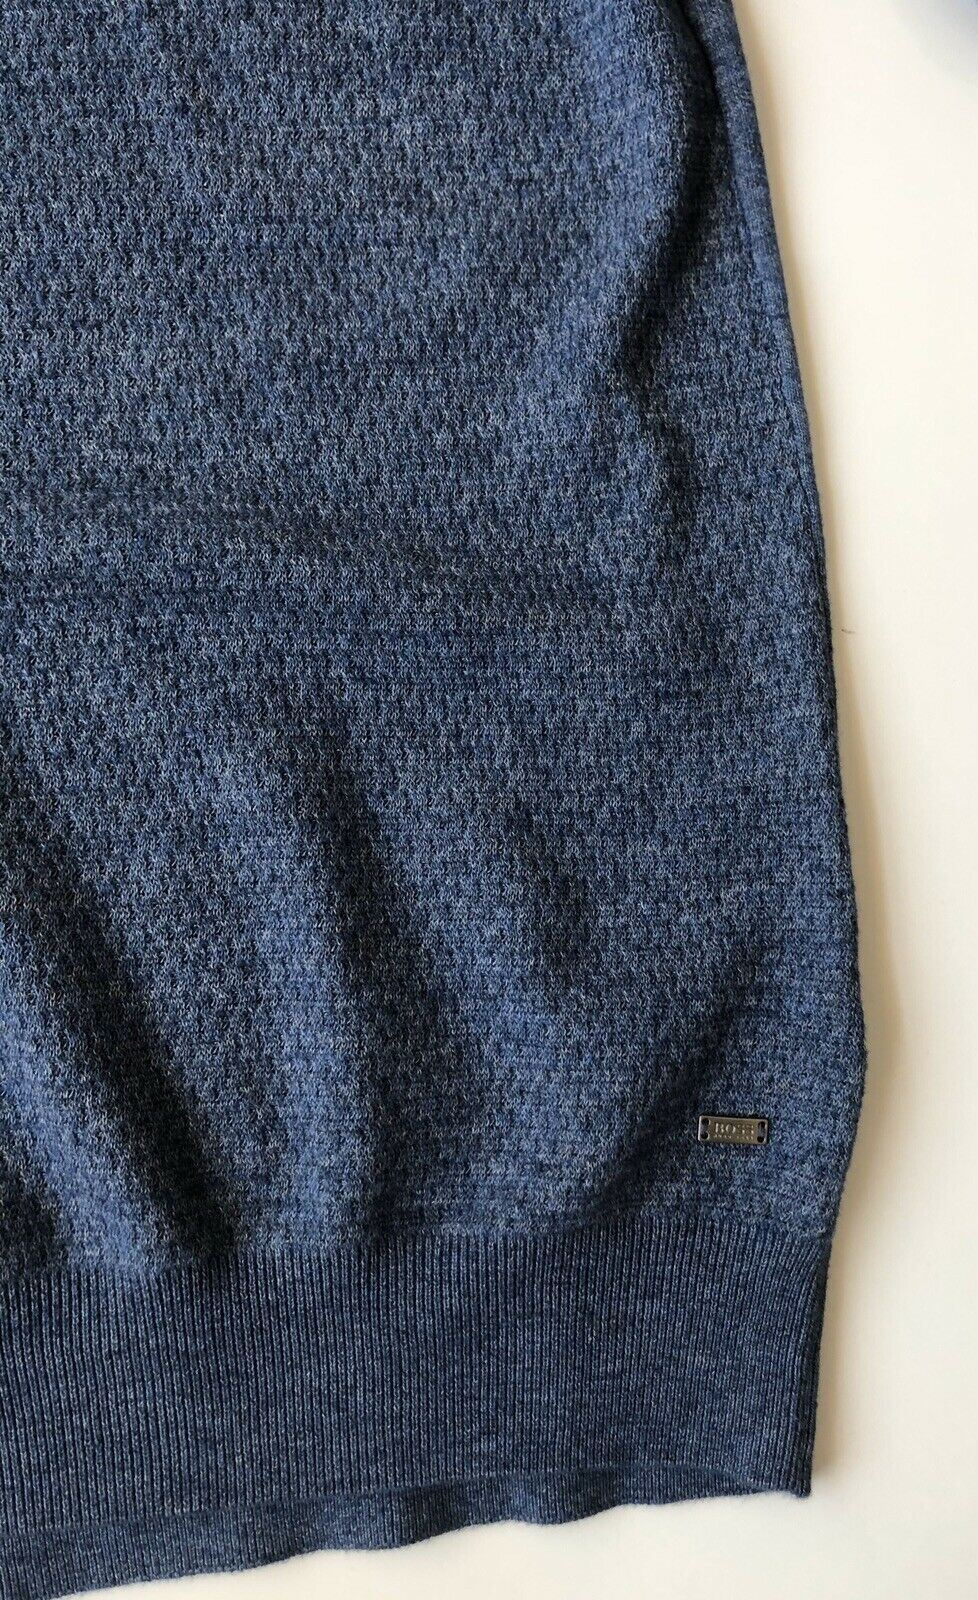 New $185 BOSS Hugo Boss Udrano Men's V-Neck Bright Blue Sweater XL Cotton